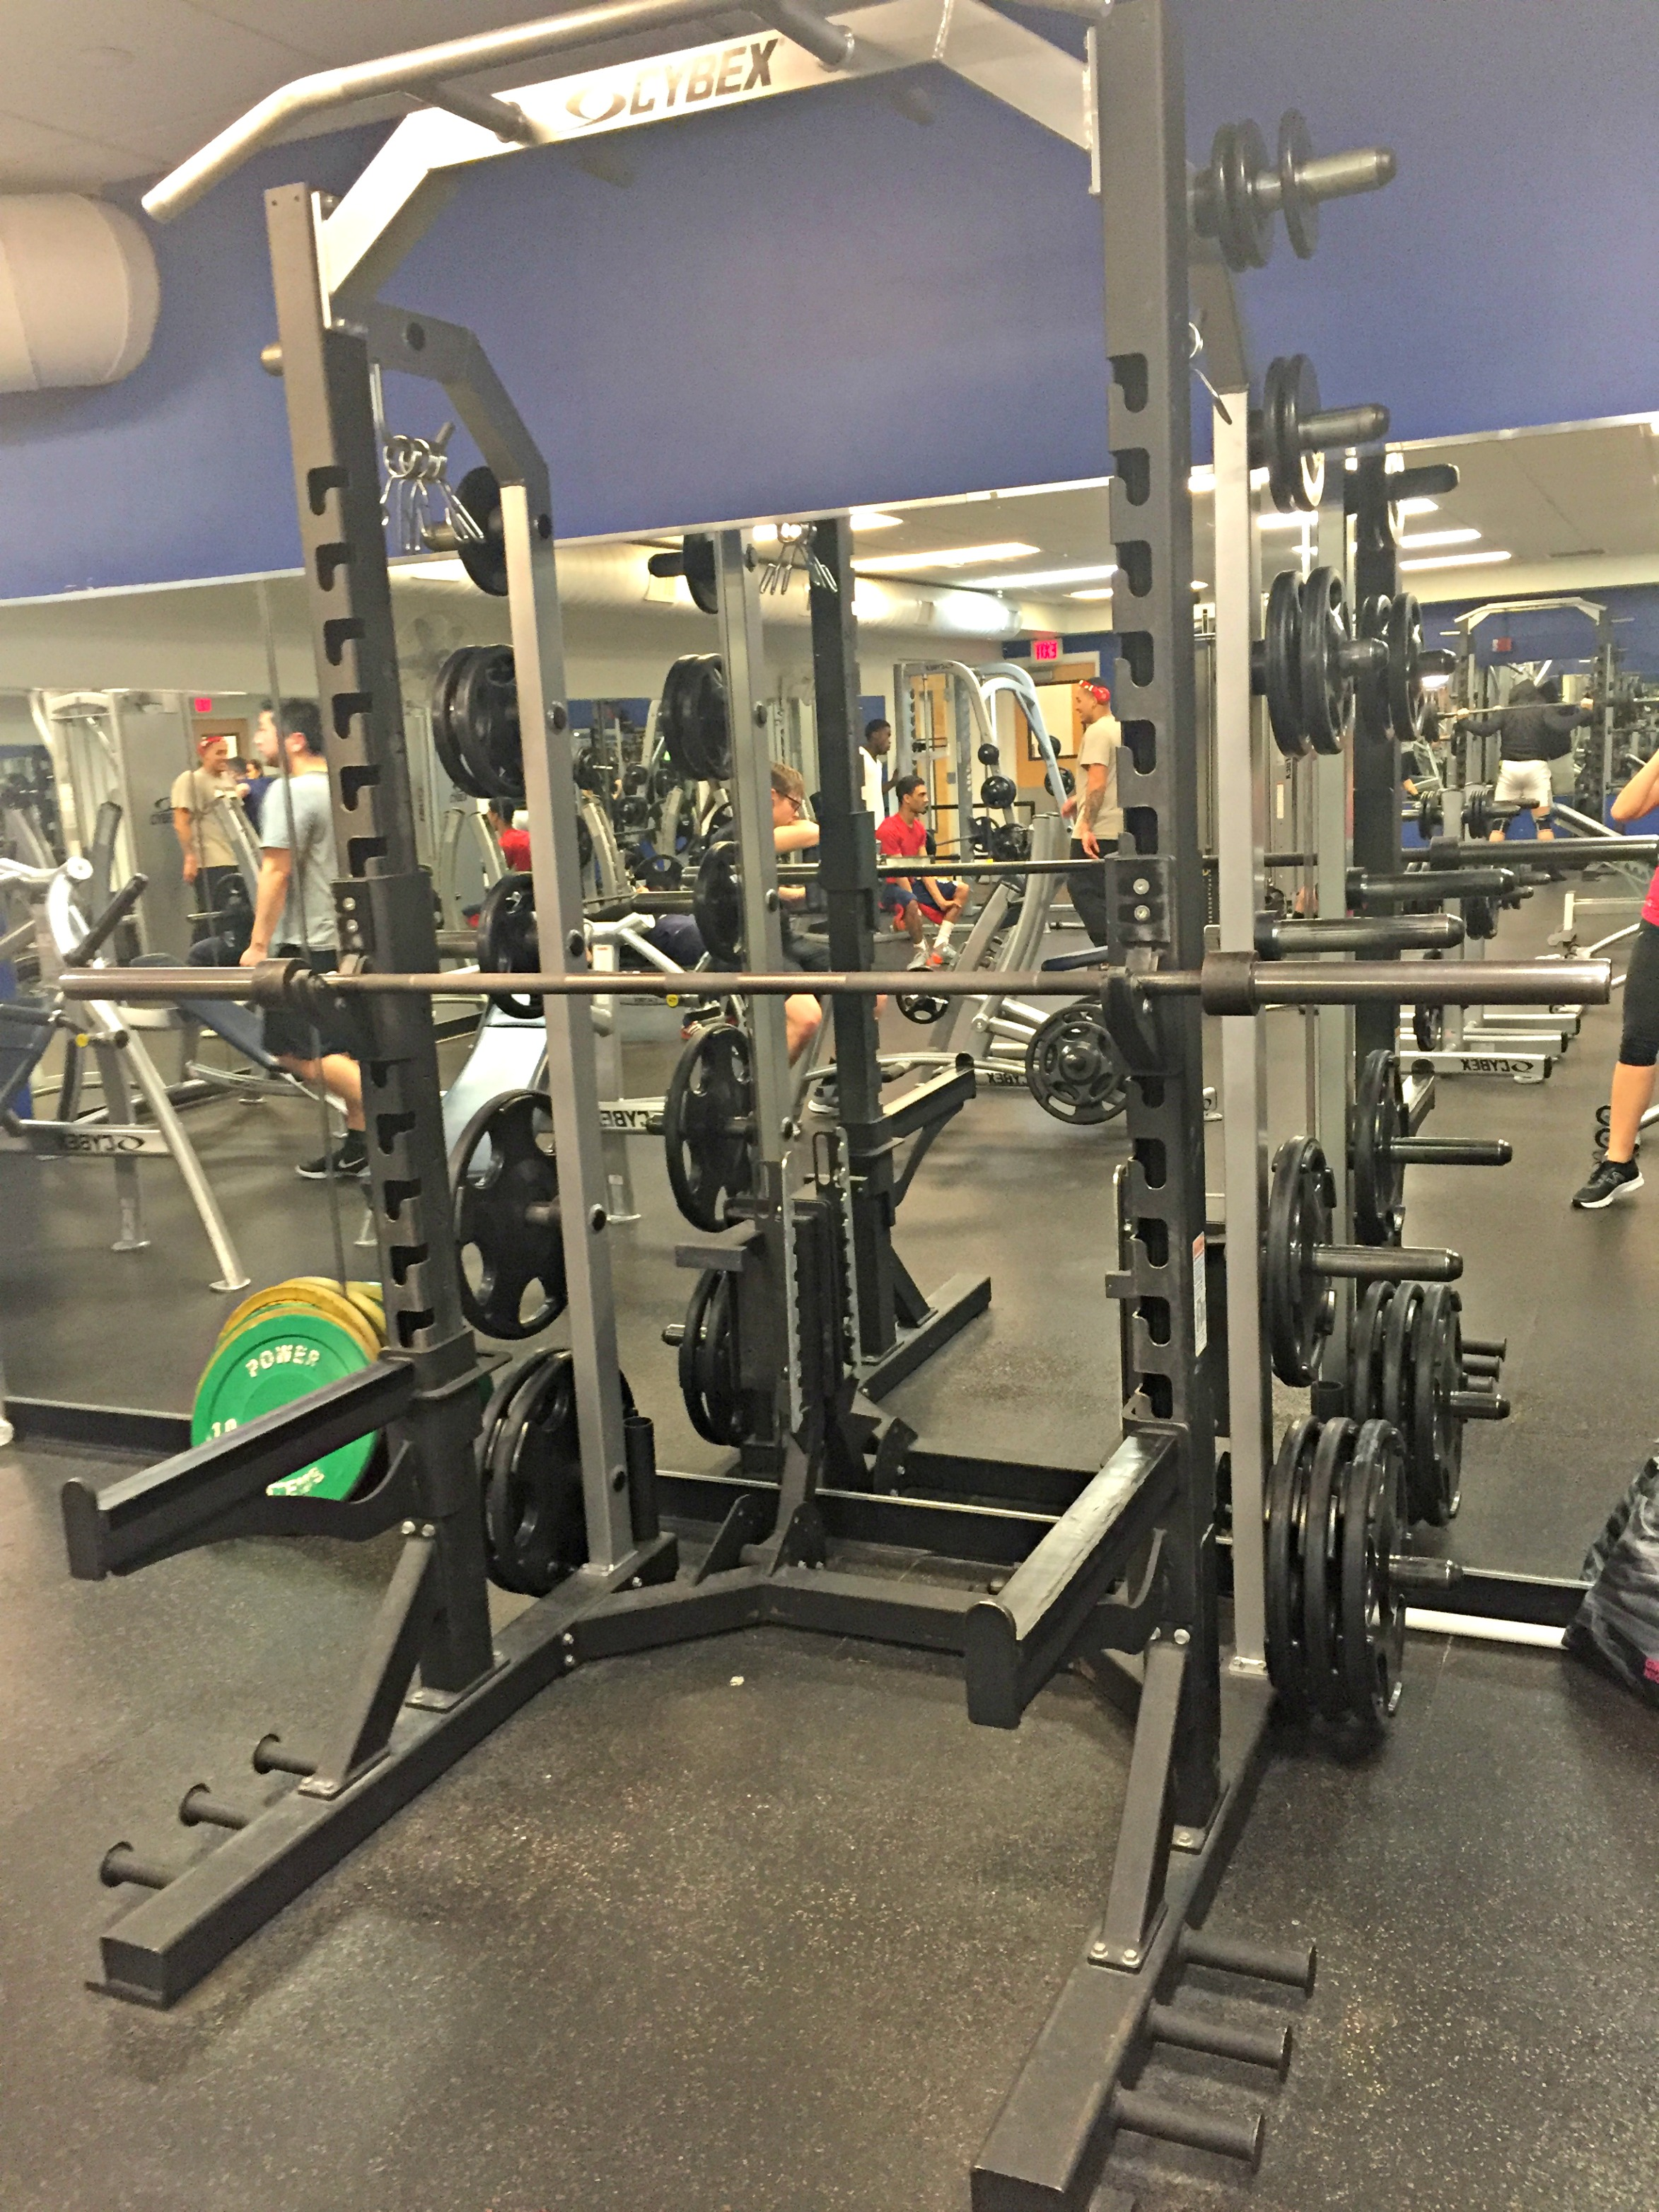 Don't Fear the Weight Room: Considerations for Program Design (Part 2)